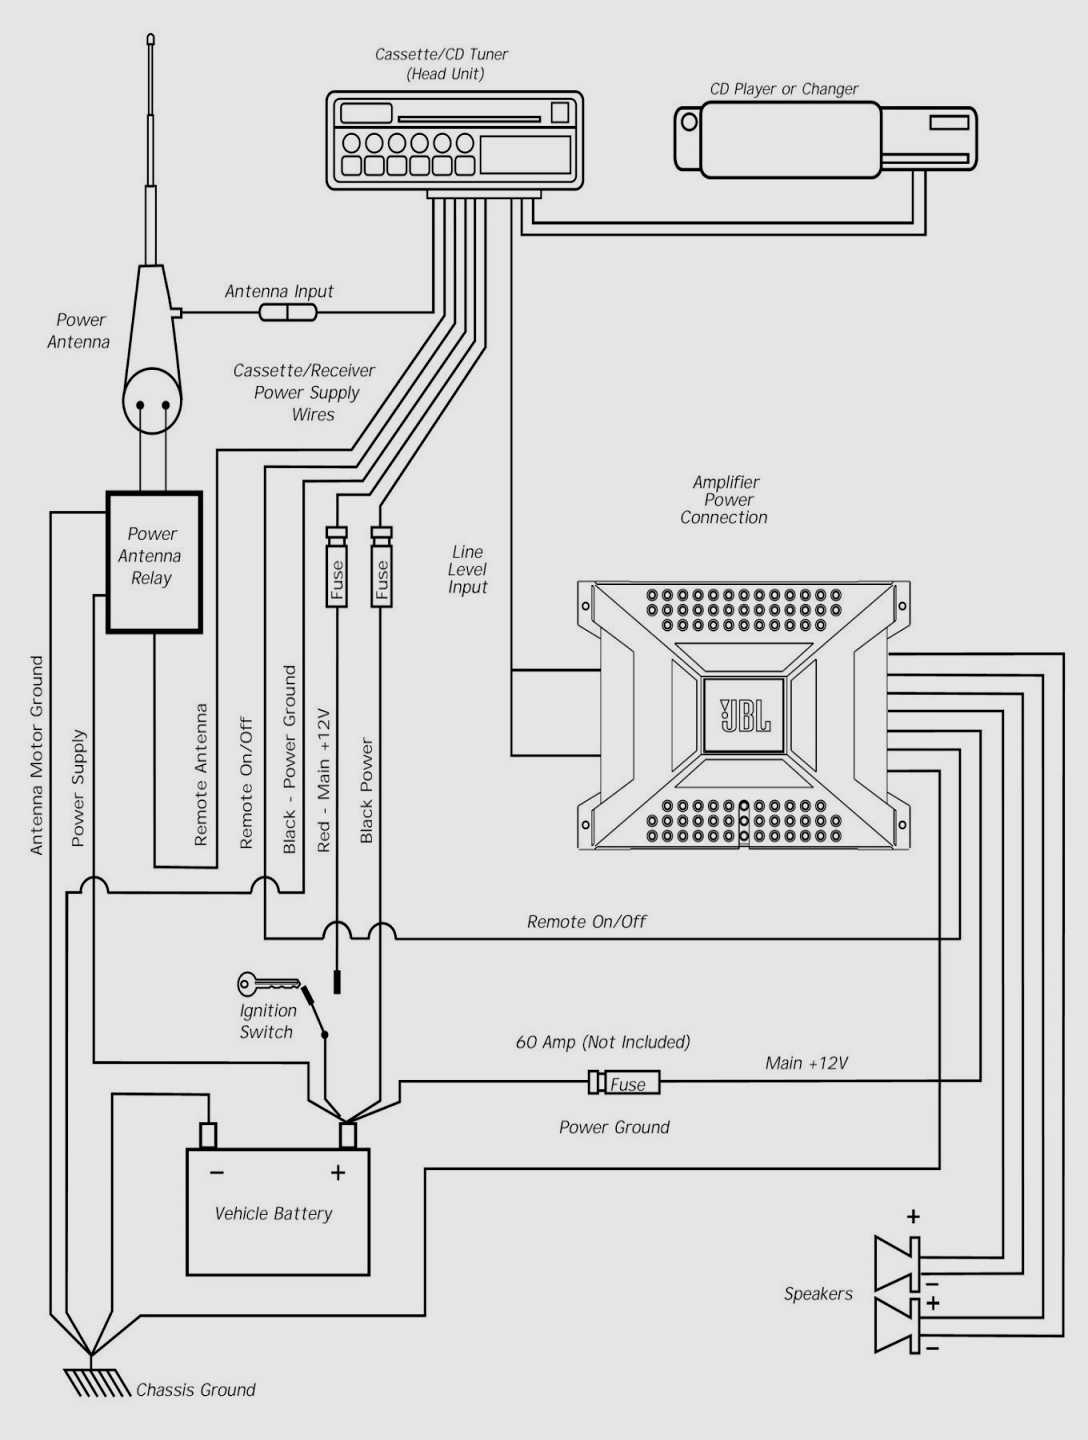 Pioneer Deh 150Mp Wiring Harness Diagram - All Wiring Diagram - Pioneer Deh-150Mp Wiring Diagram